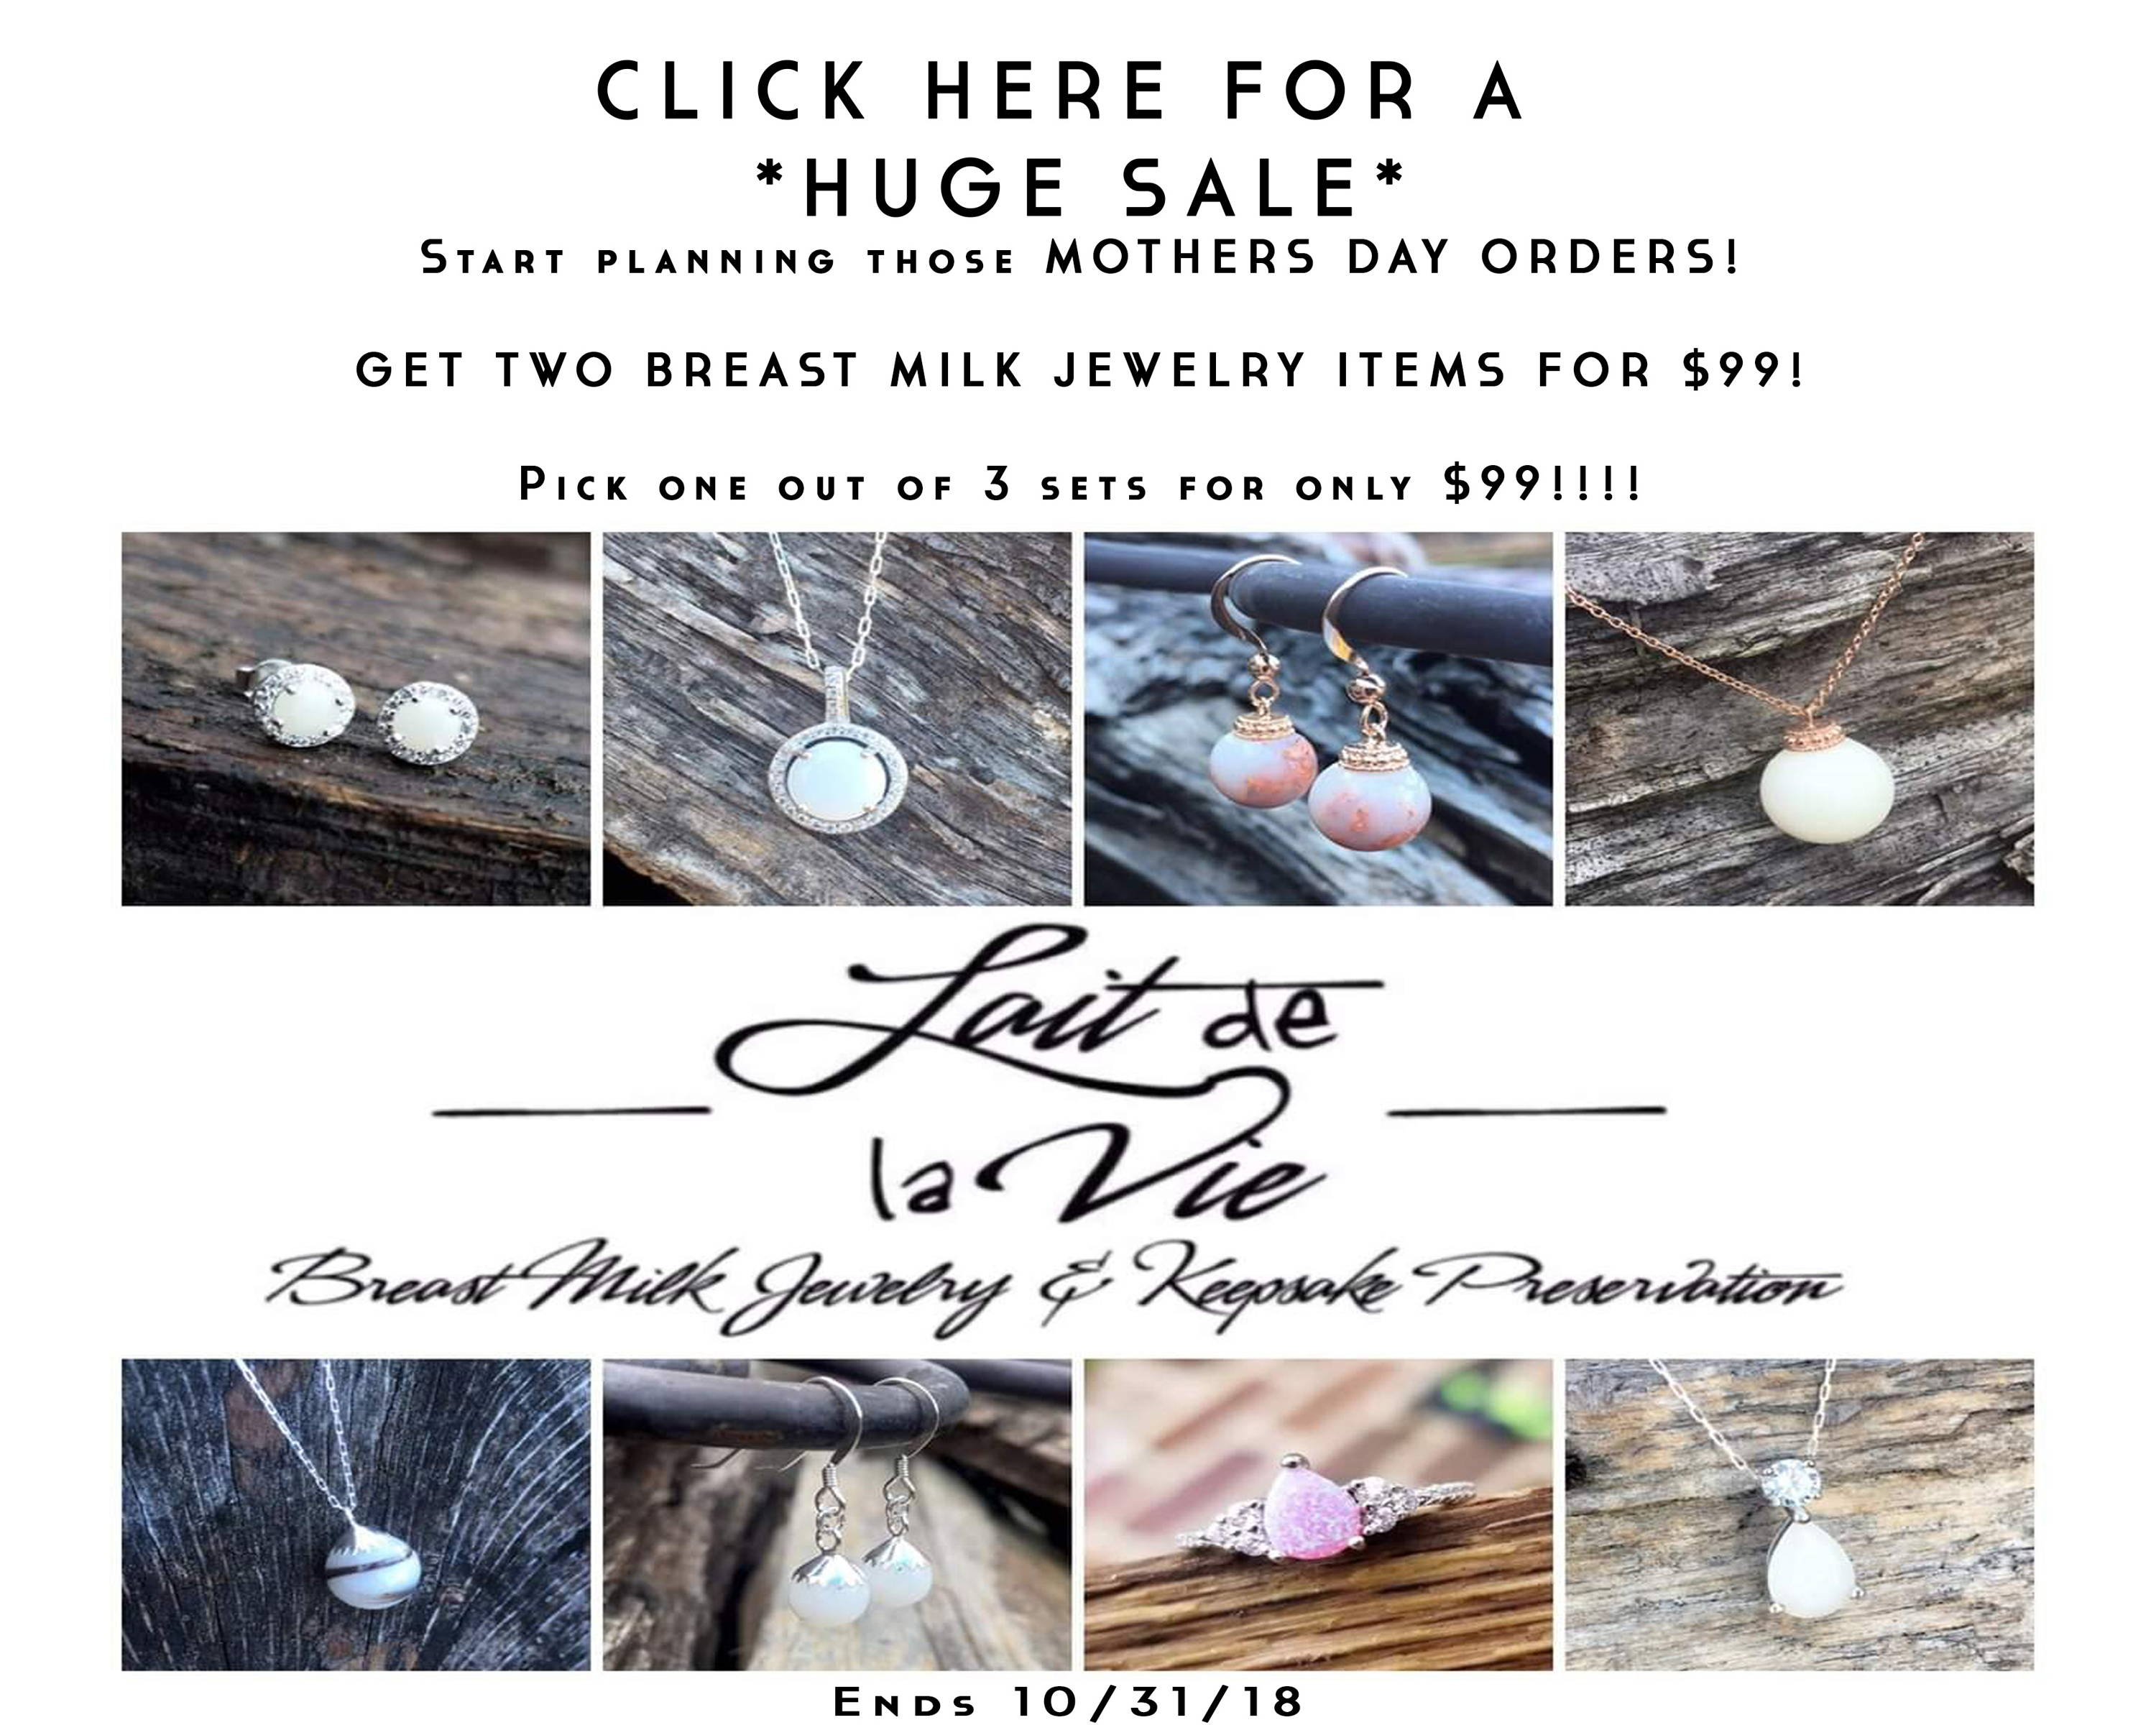 Start planning those MOTHERS DAY ORDERS!  GET TWO BREAST MILK JEWELRY ITEMS FOR $99!  Pick one out of 3 sets for only $99!!!!  (Must purchase from the listings below to receive the discounts.)